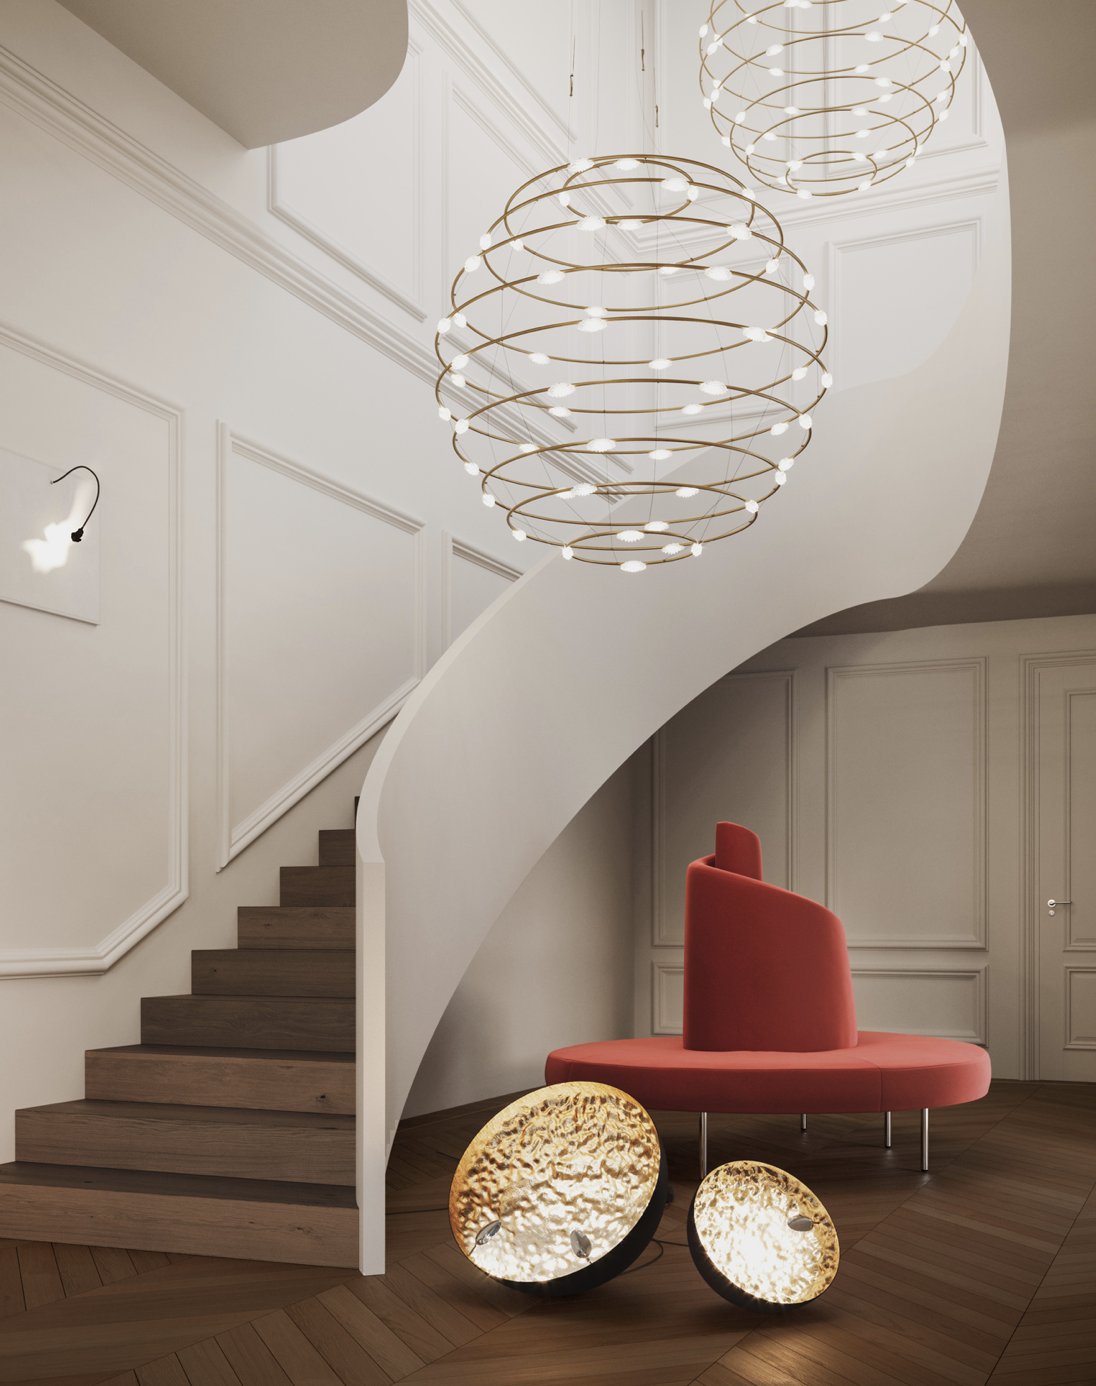 Stchu-Moon 01 Floor Lamp - Stchu-Moon separates the light source from the lighting object, which takes on its own aesthetic quality as a result. The light is refracted off deliberately irregular surfaces, which multiplies their quantity, making the entire object a glowing light. | Matter of Stuff